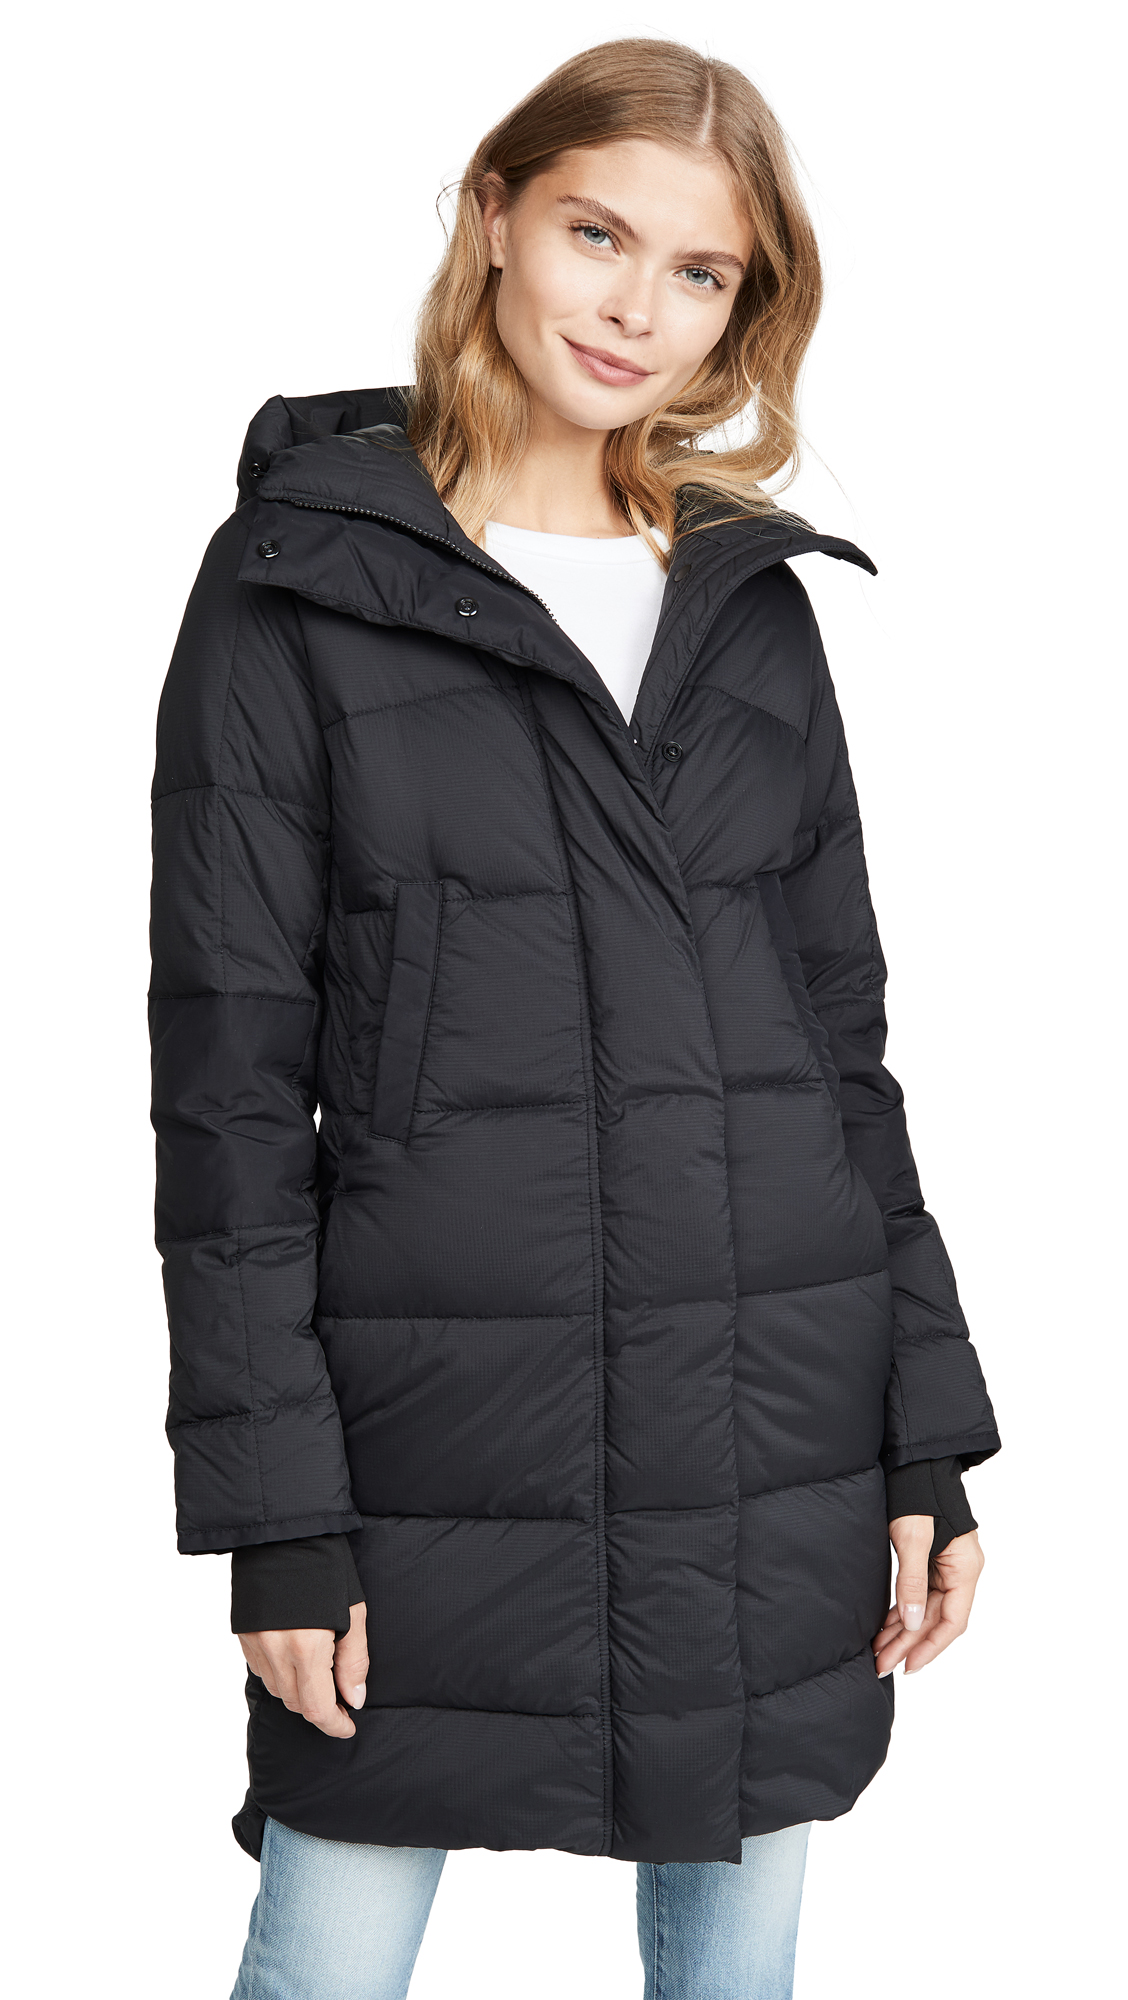 Buy Canada Goose Alliston Coat online beautiful Canada Goose Jackets, Coats, Down Jackets